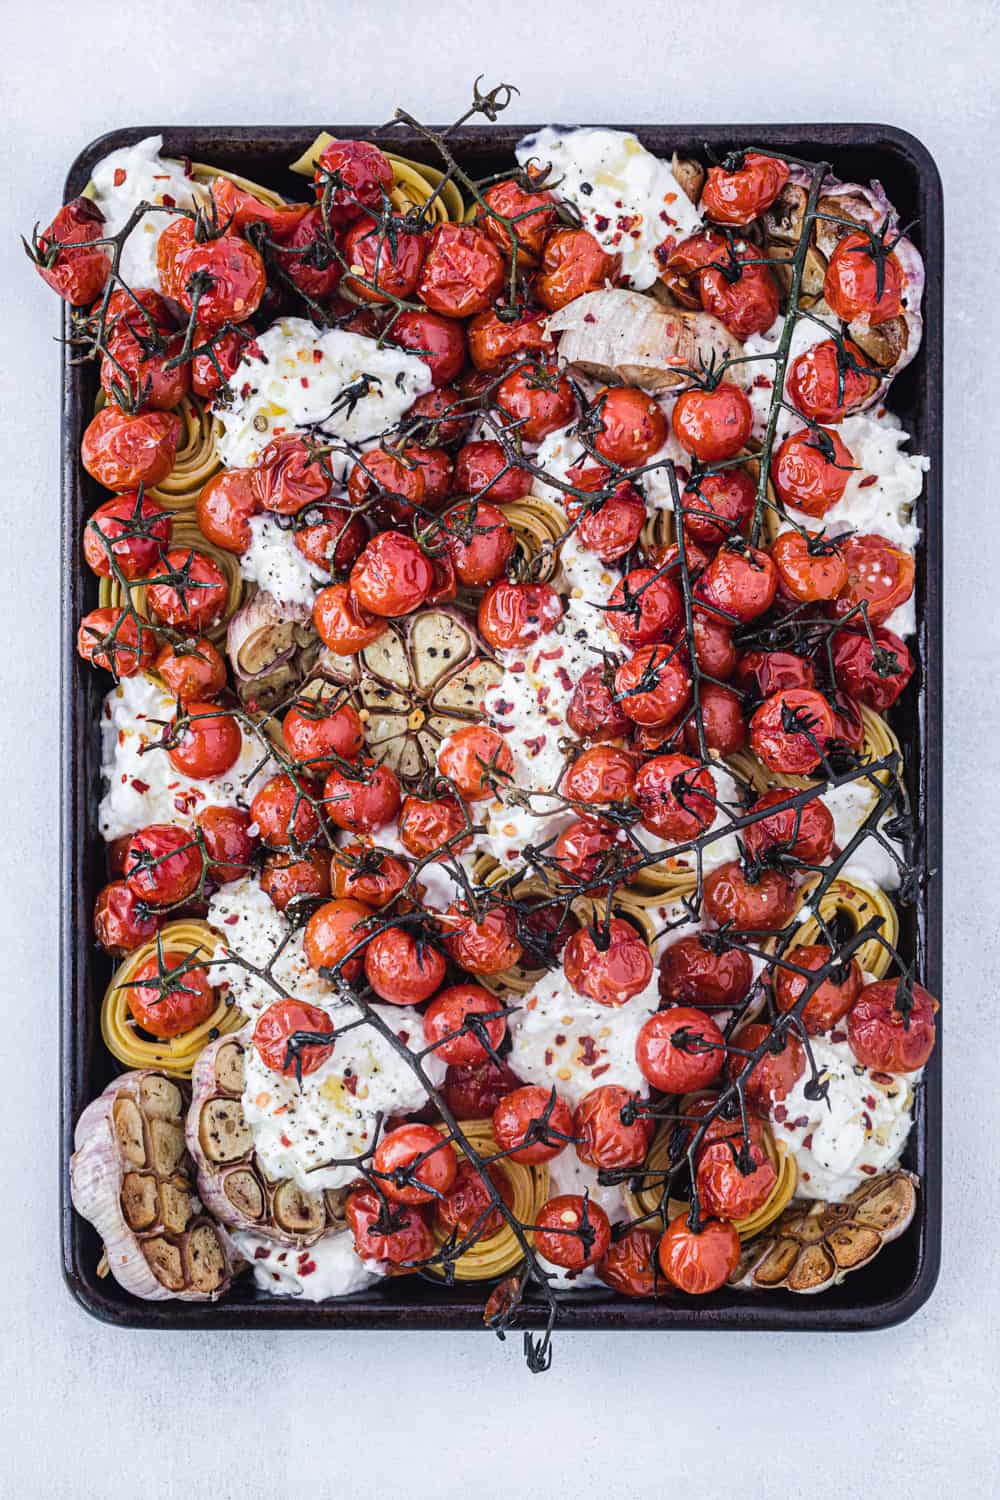 overhead shot of the pasta with cherry tomatoes, burrata, garlic chili flakes, salt and pepper arranged on a baking sheet on a white background.